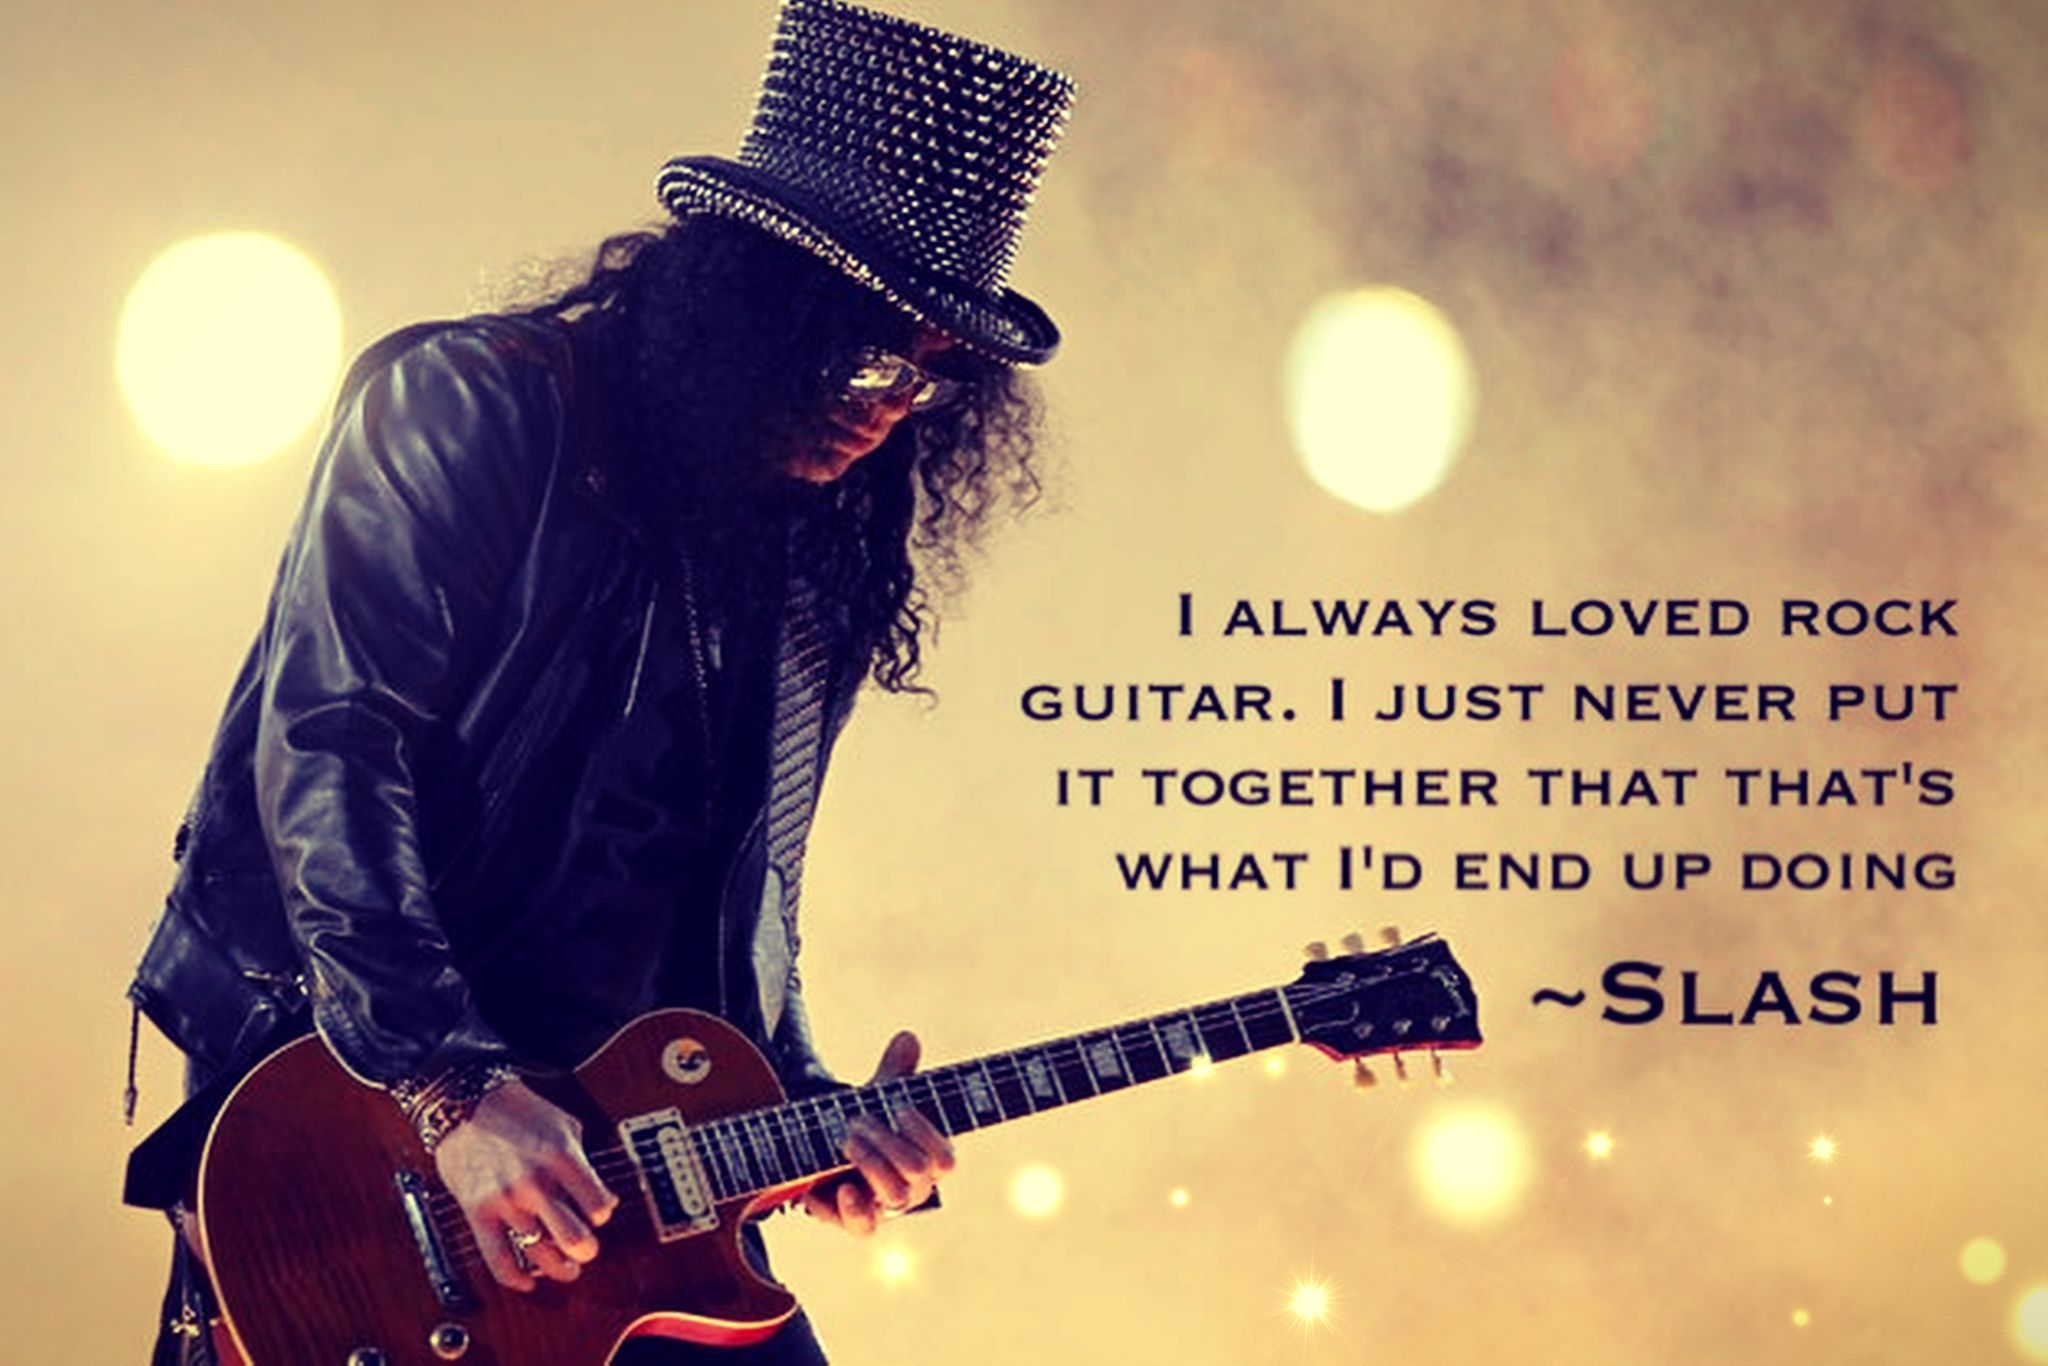 Slash Music Industry Is Dangerous  News, Entertainment. Love Quotes Ecards. Deep Quotes About Ex Girlfriends. Mom Quotes.com. Trust Quotes Goodreads. Love Quotes Quotations. Sad Quotes In Movies. Work Quotes Customer Service. Tattoo Quotes Horse